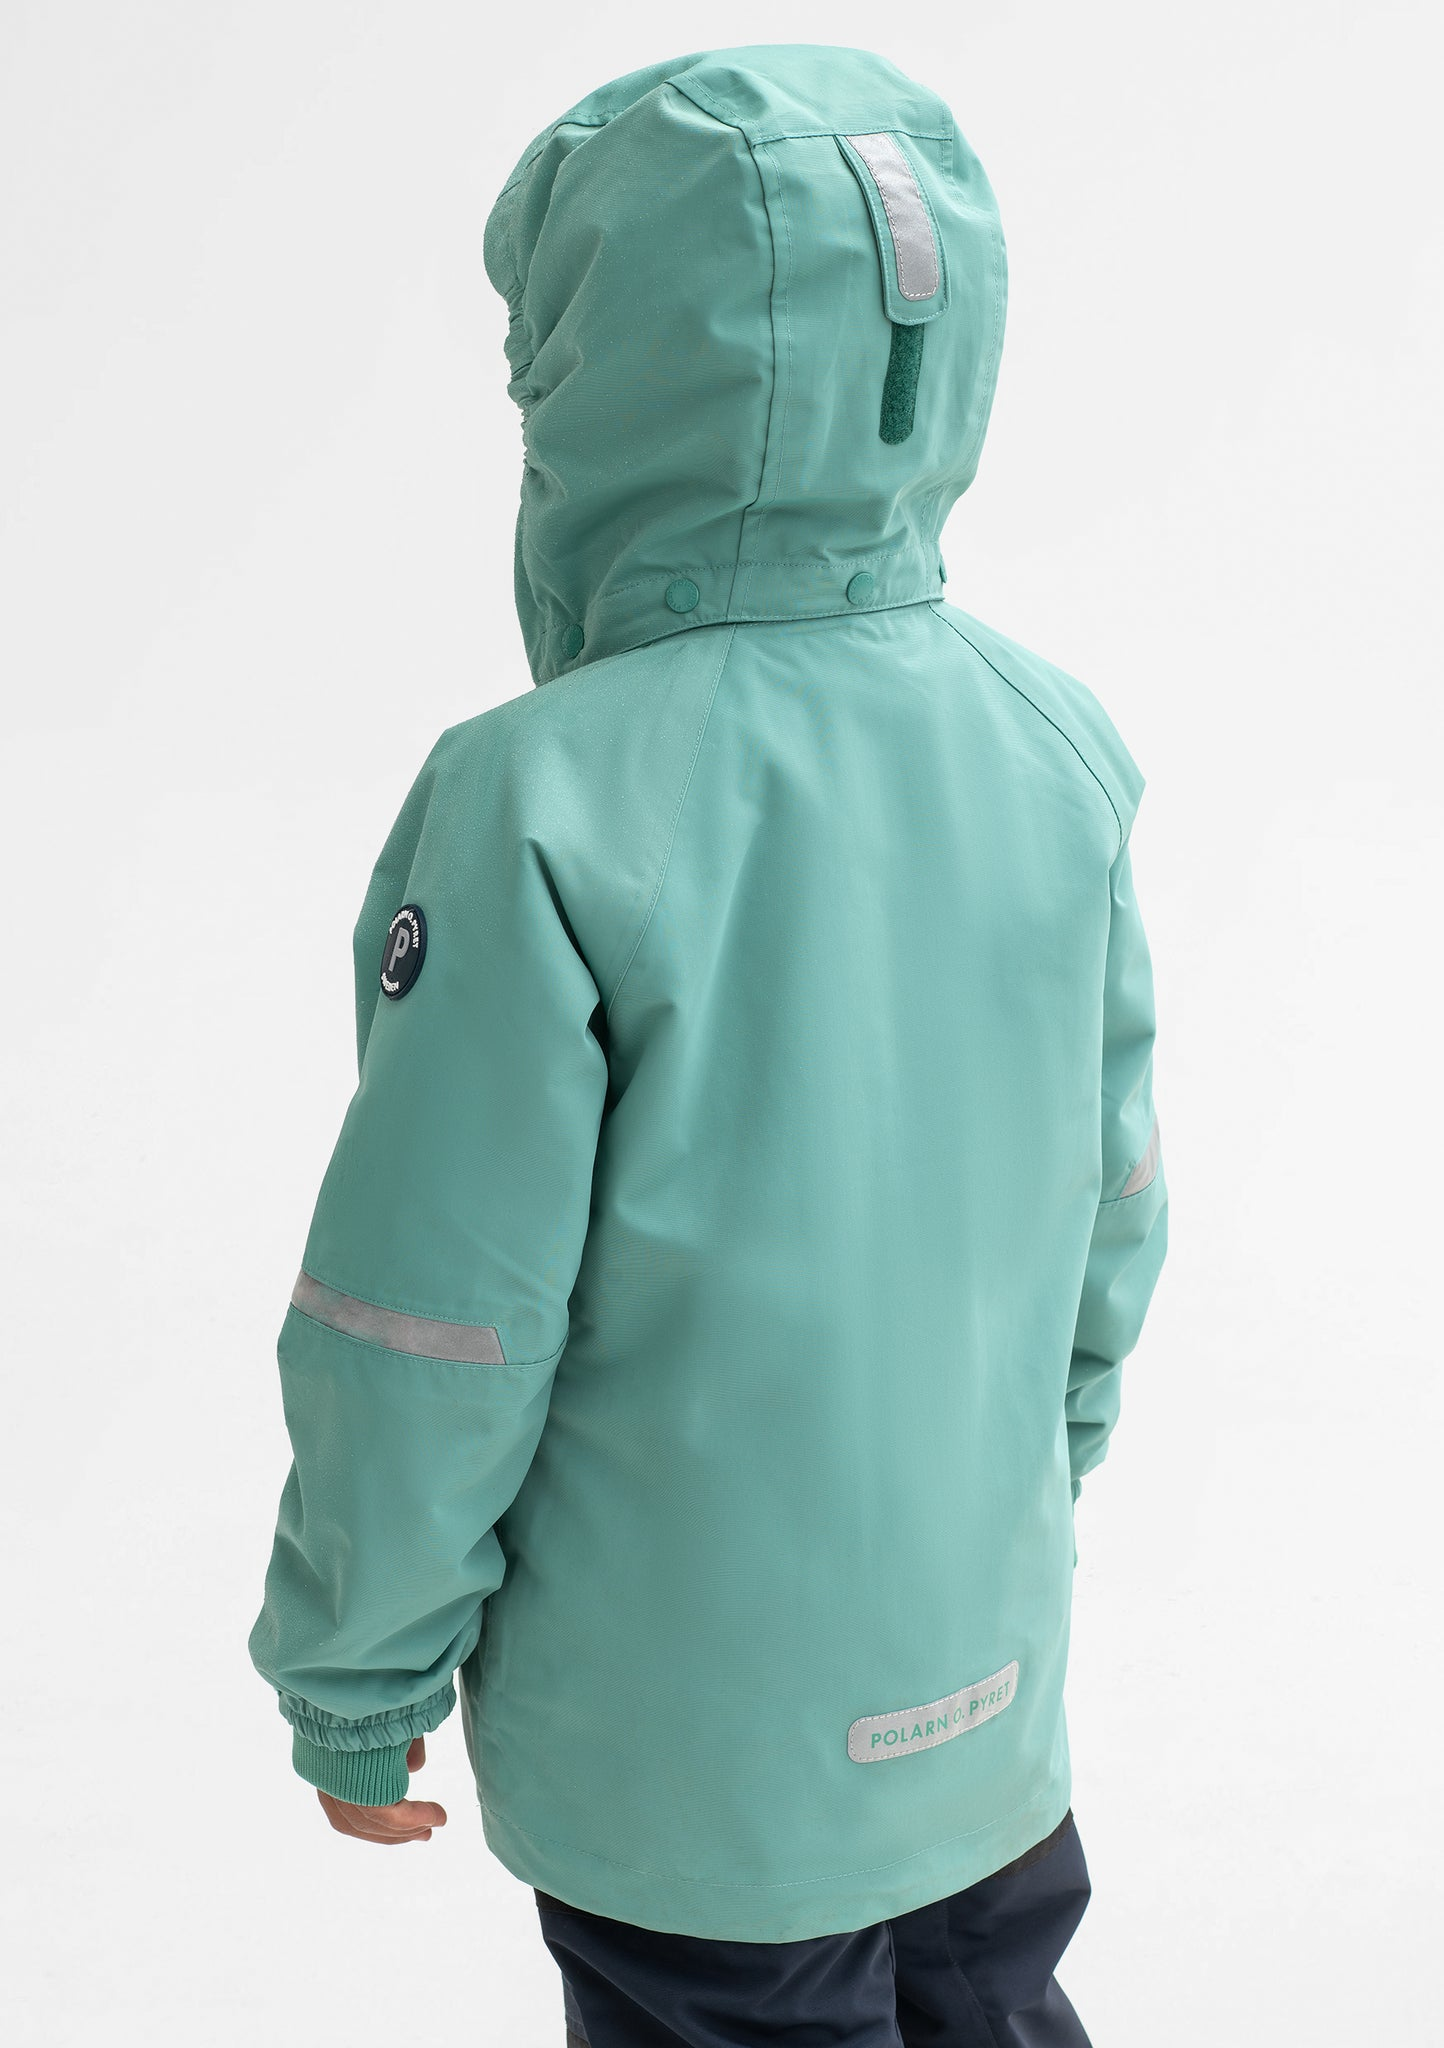 Back view of a boy wearing a green, kids waterproof jacket made of lightweight fabric, with silver reflectors on the sleeves.